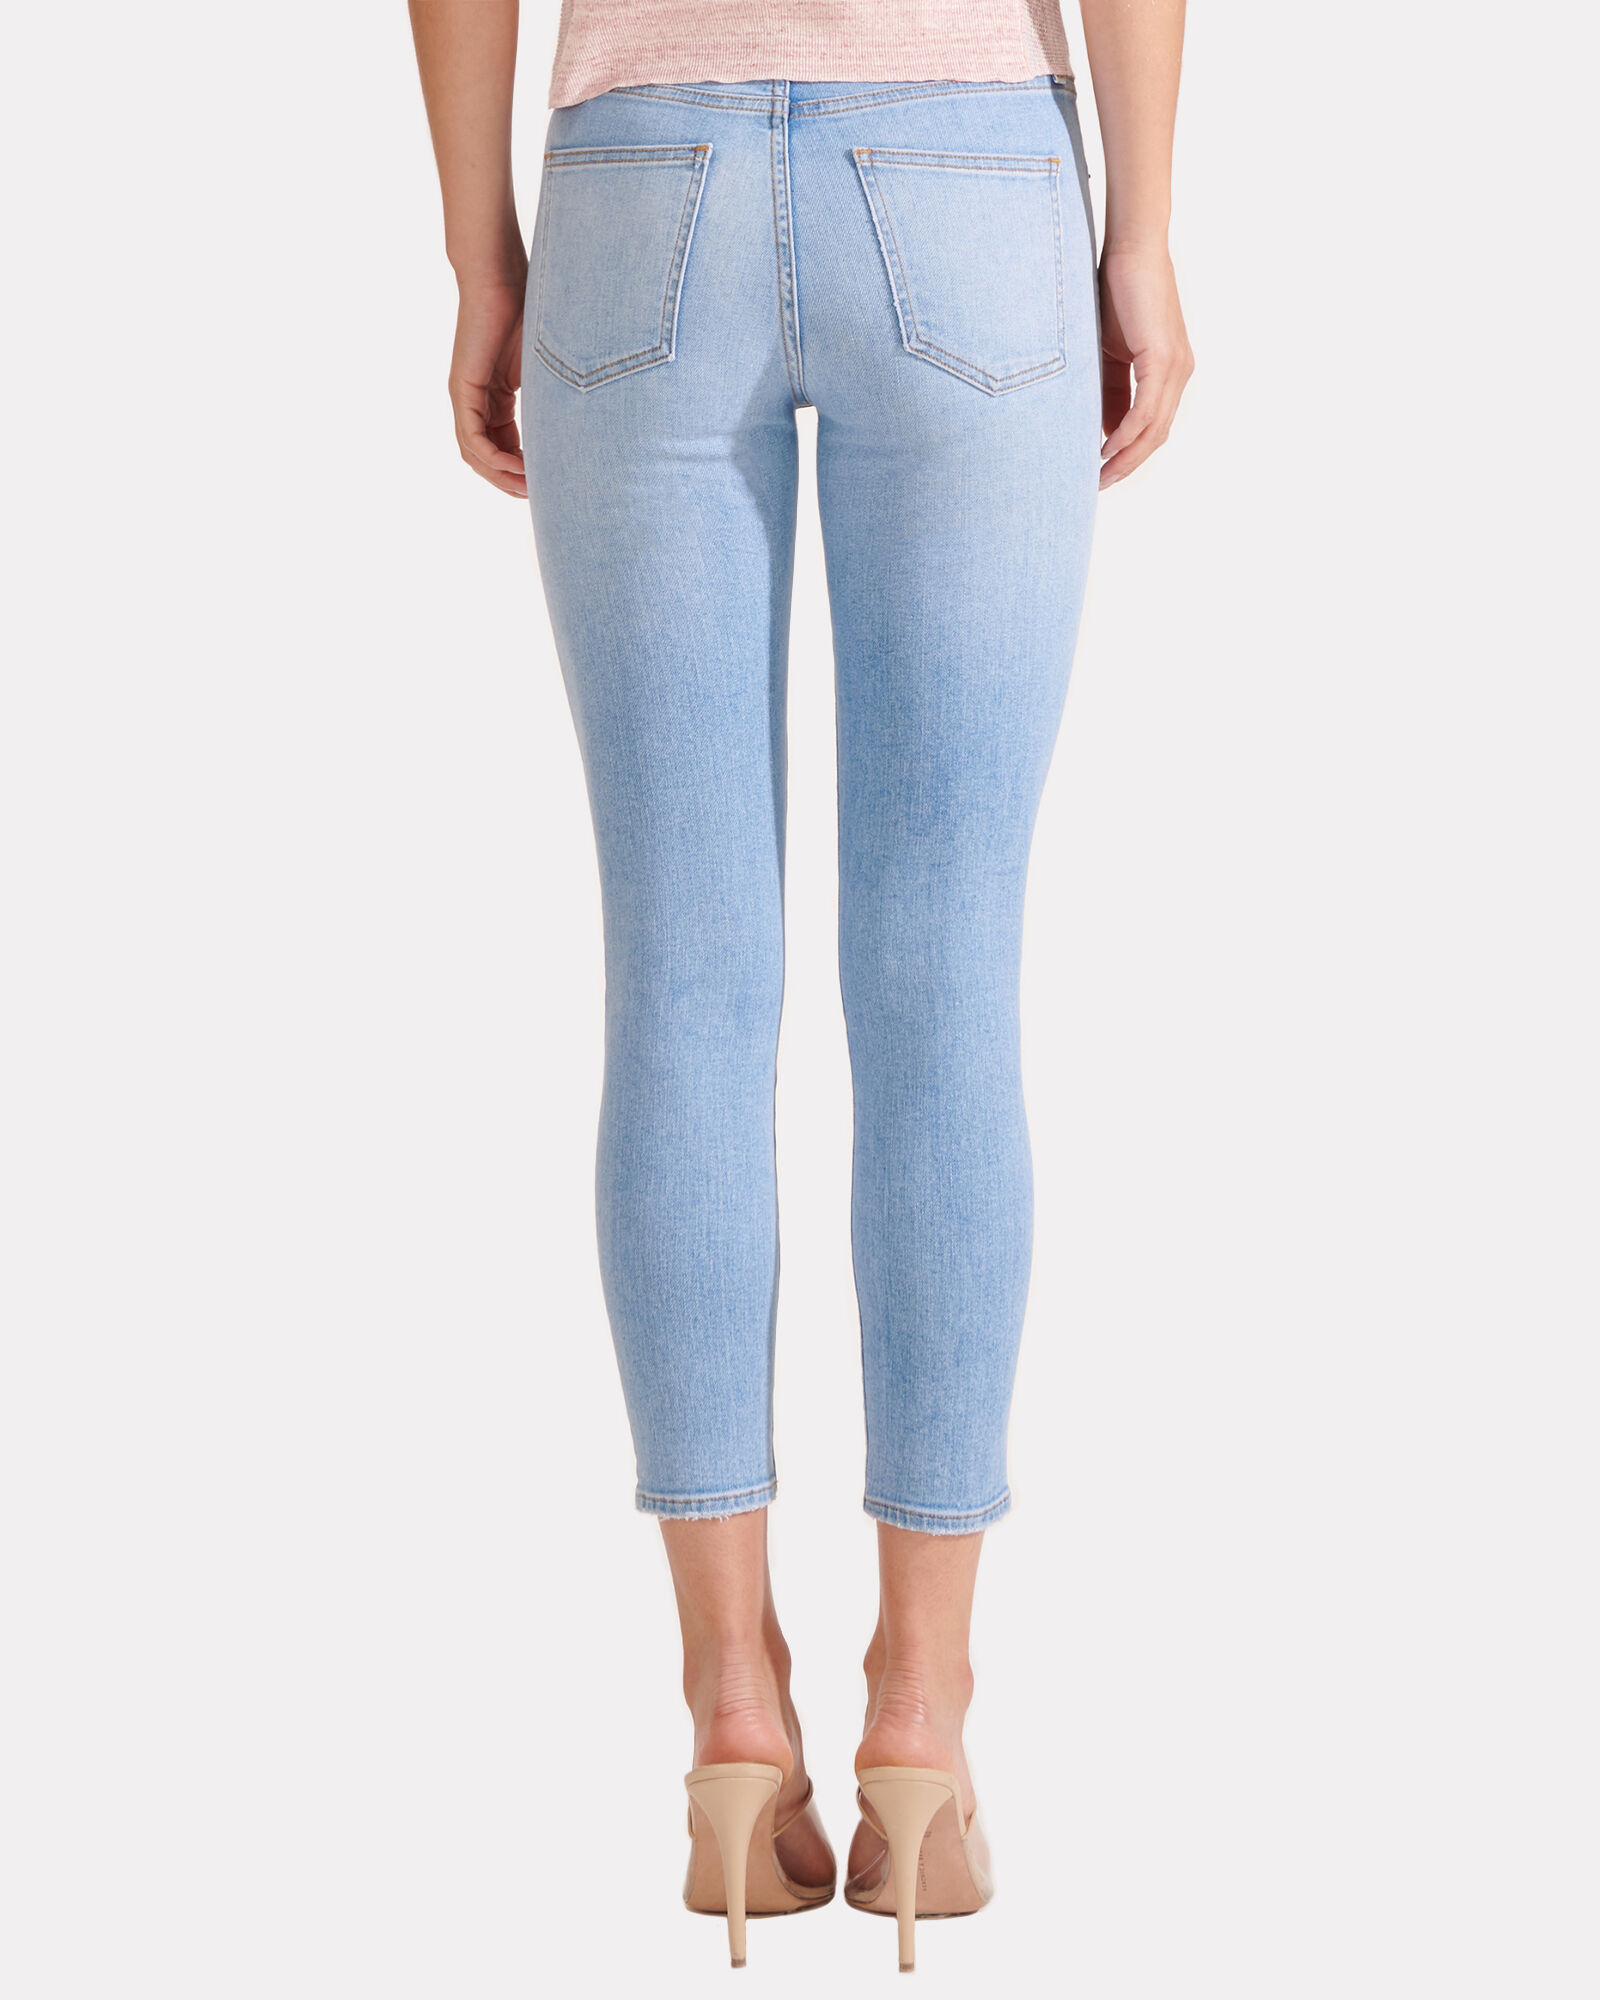 Debbie High-Rise Skinny Jeans, PALE STONE, hi-res